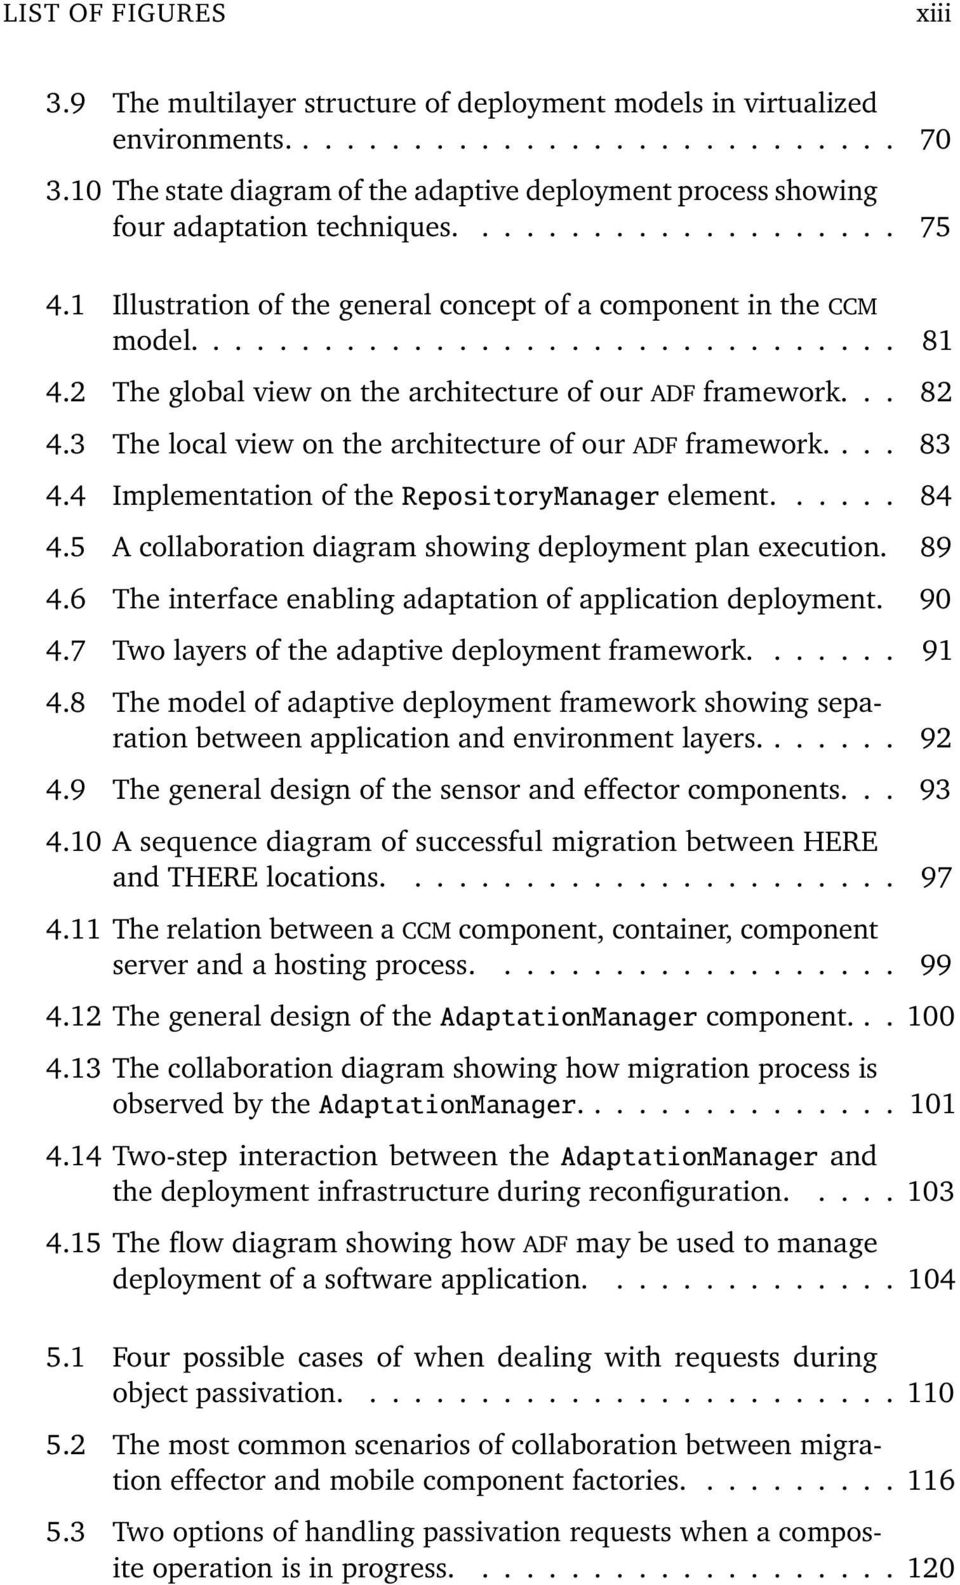 2 The global view on the architecture of our ADF framework... 82 4.3 The local view on the architecture of our ADF framework.... 83 4.4 Implementation of the RepositoryManager element...... 84 4.